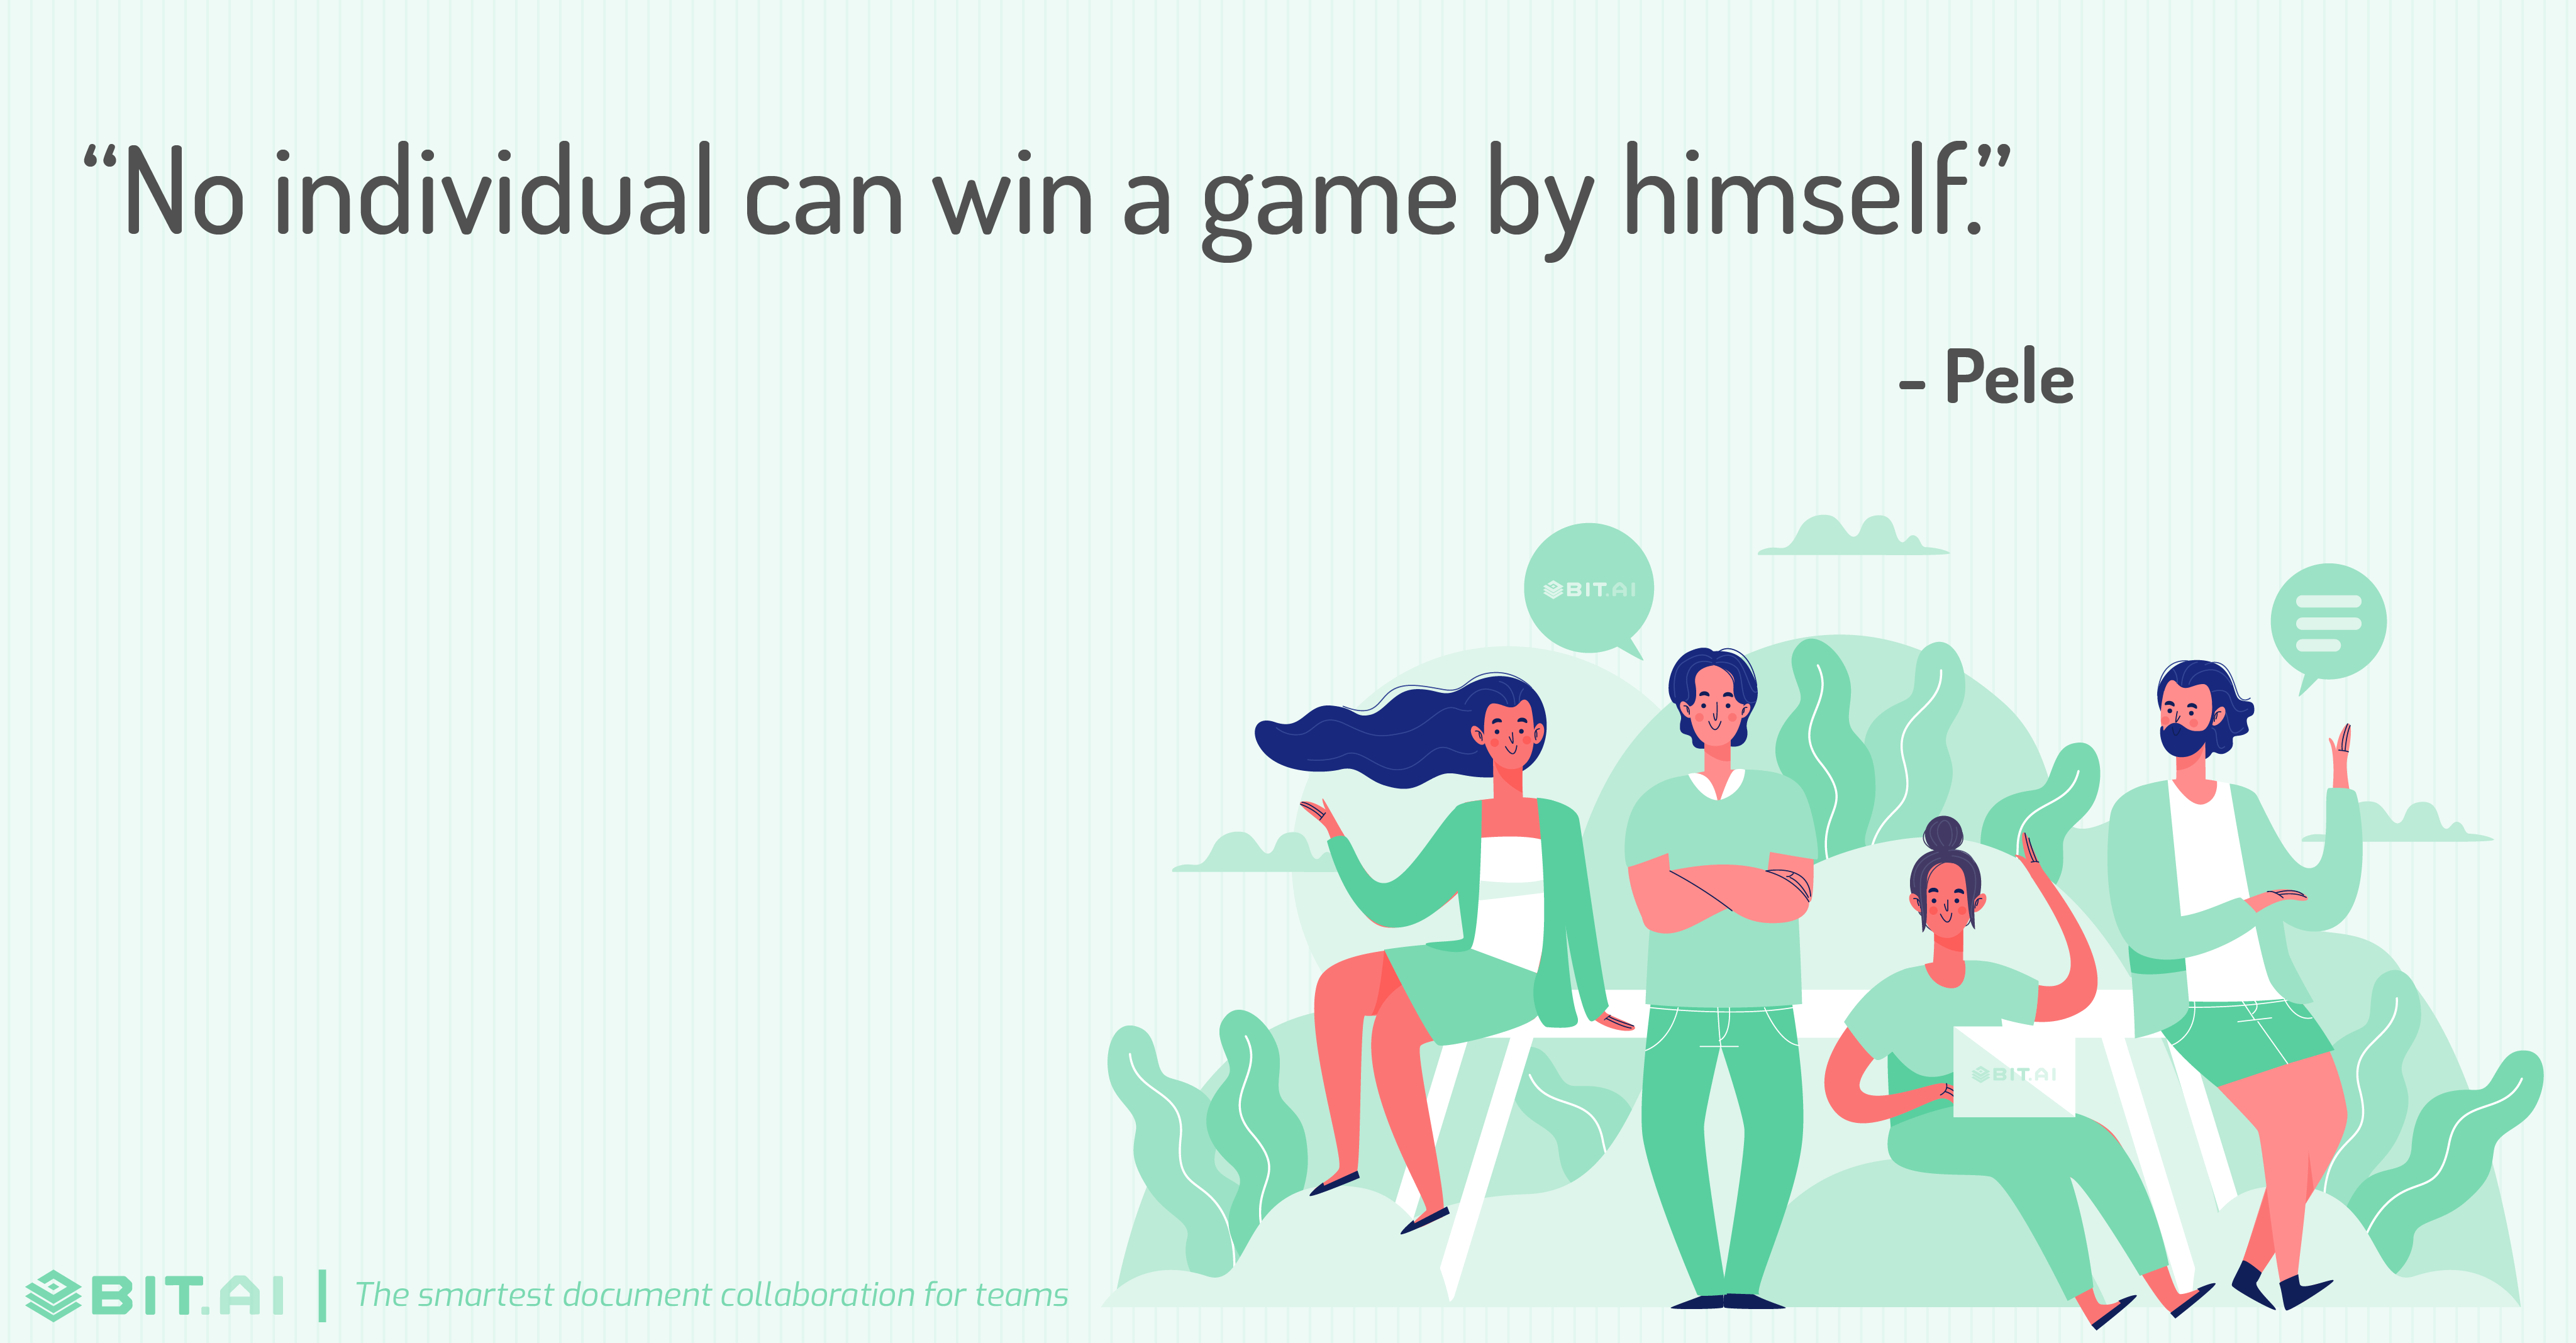 """No individual can win a game by himself."" - Pele"